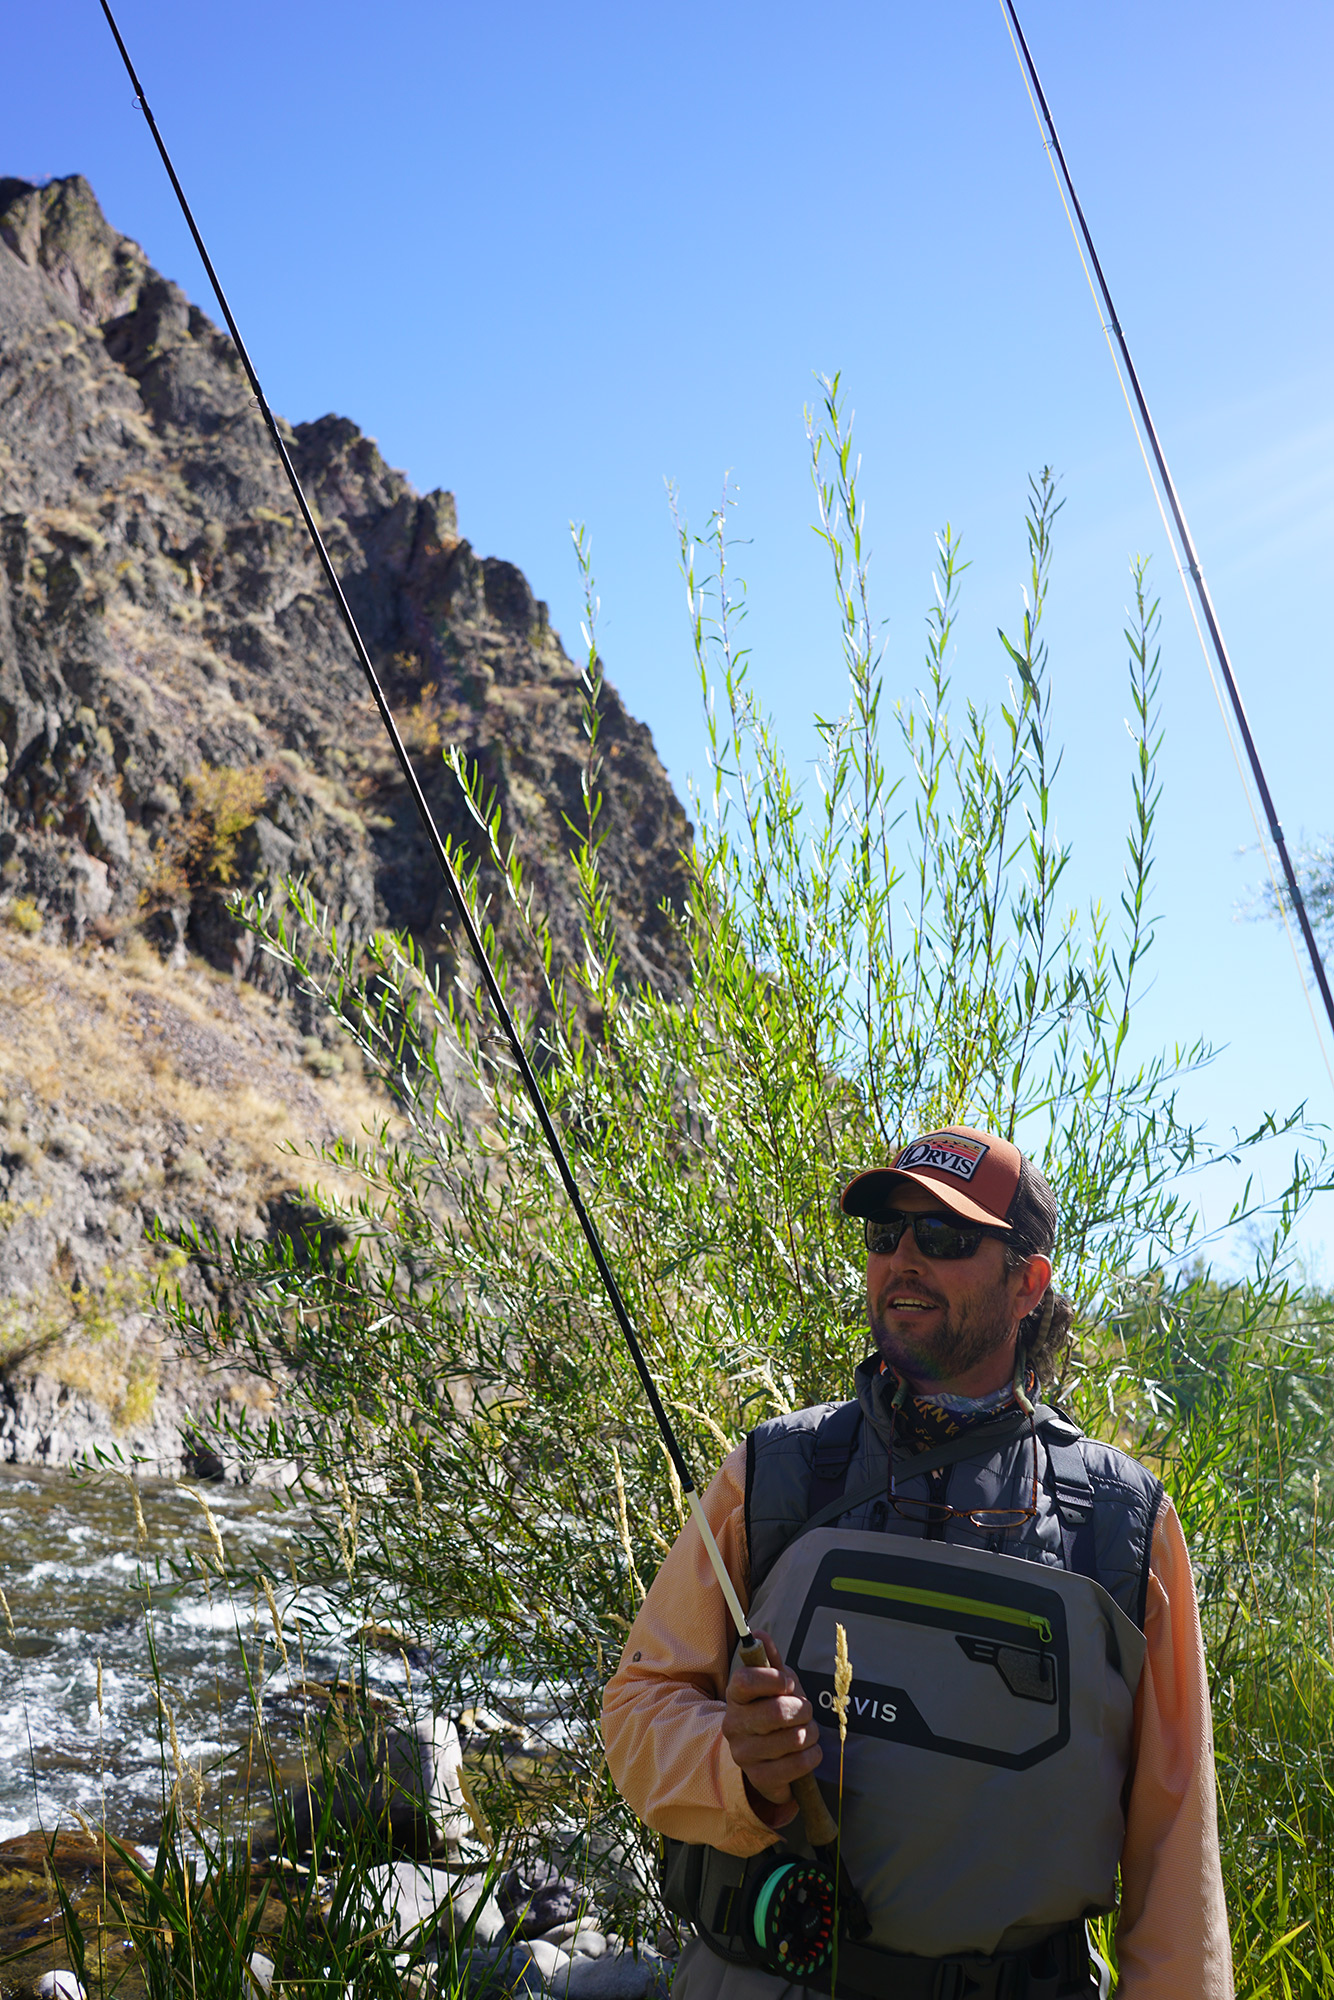 Bryant Dunn of Sun Valley Outfitters on the Big Wood River, Ketchum, Idaho